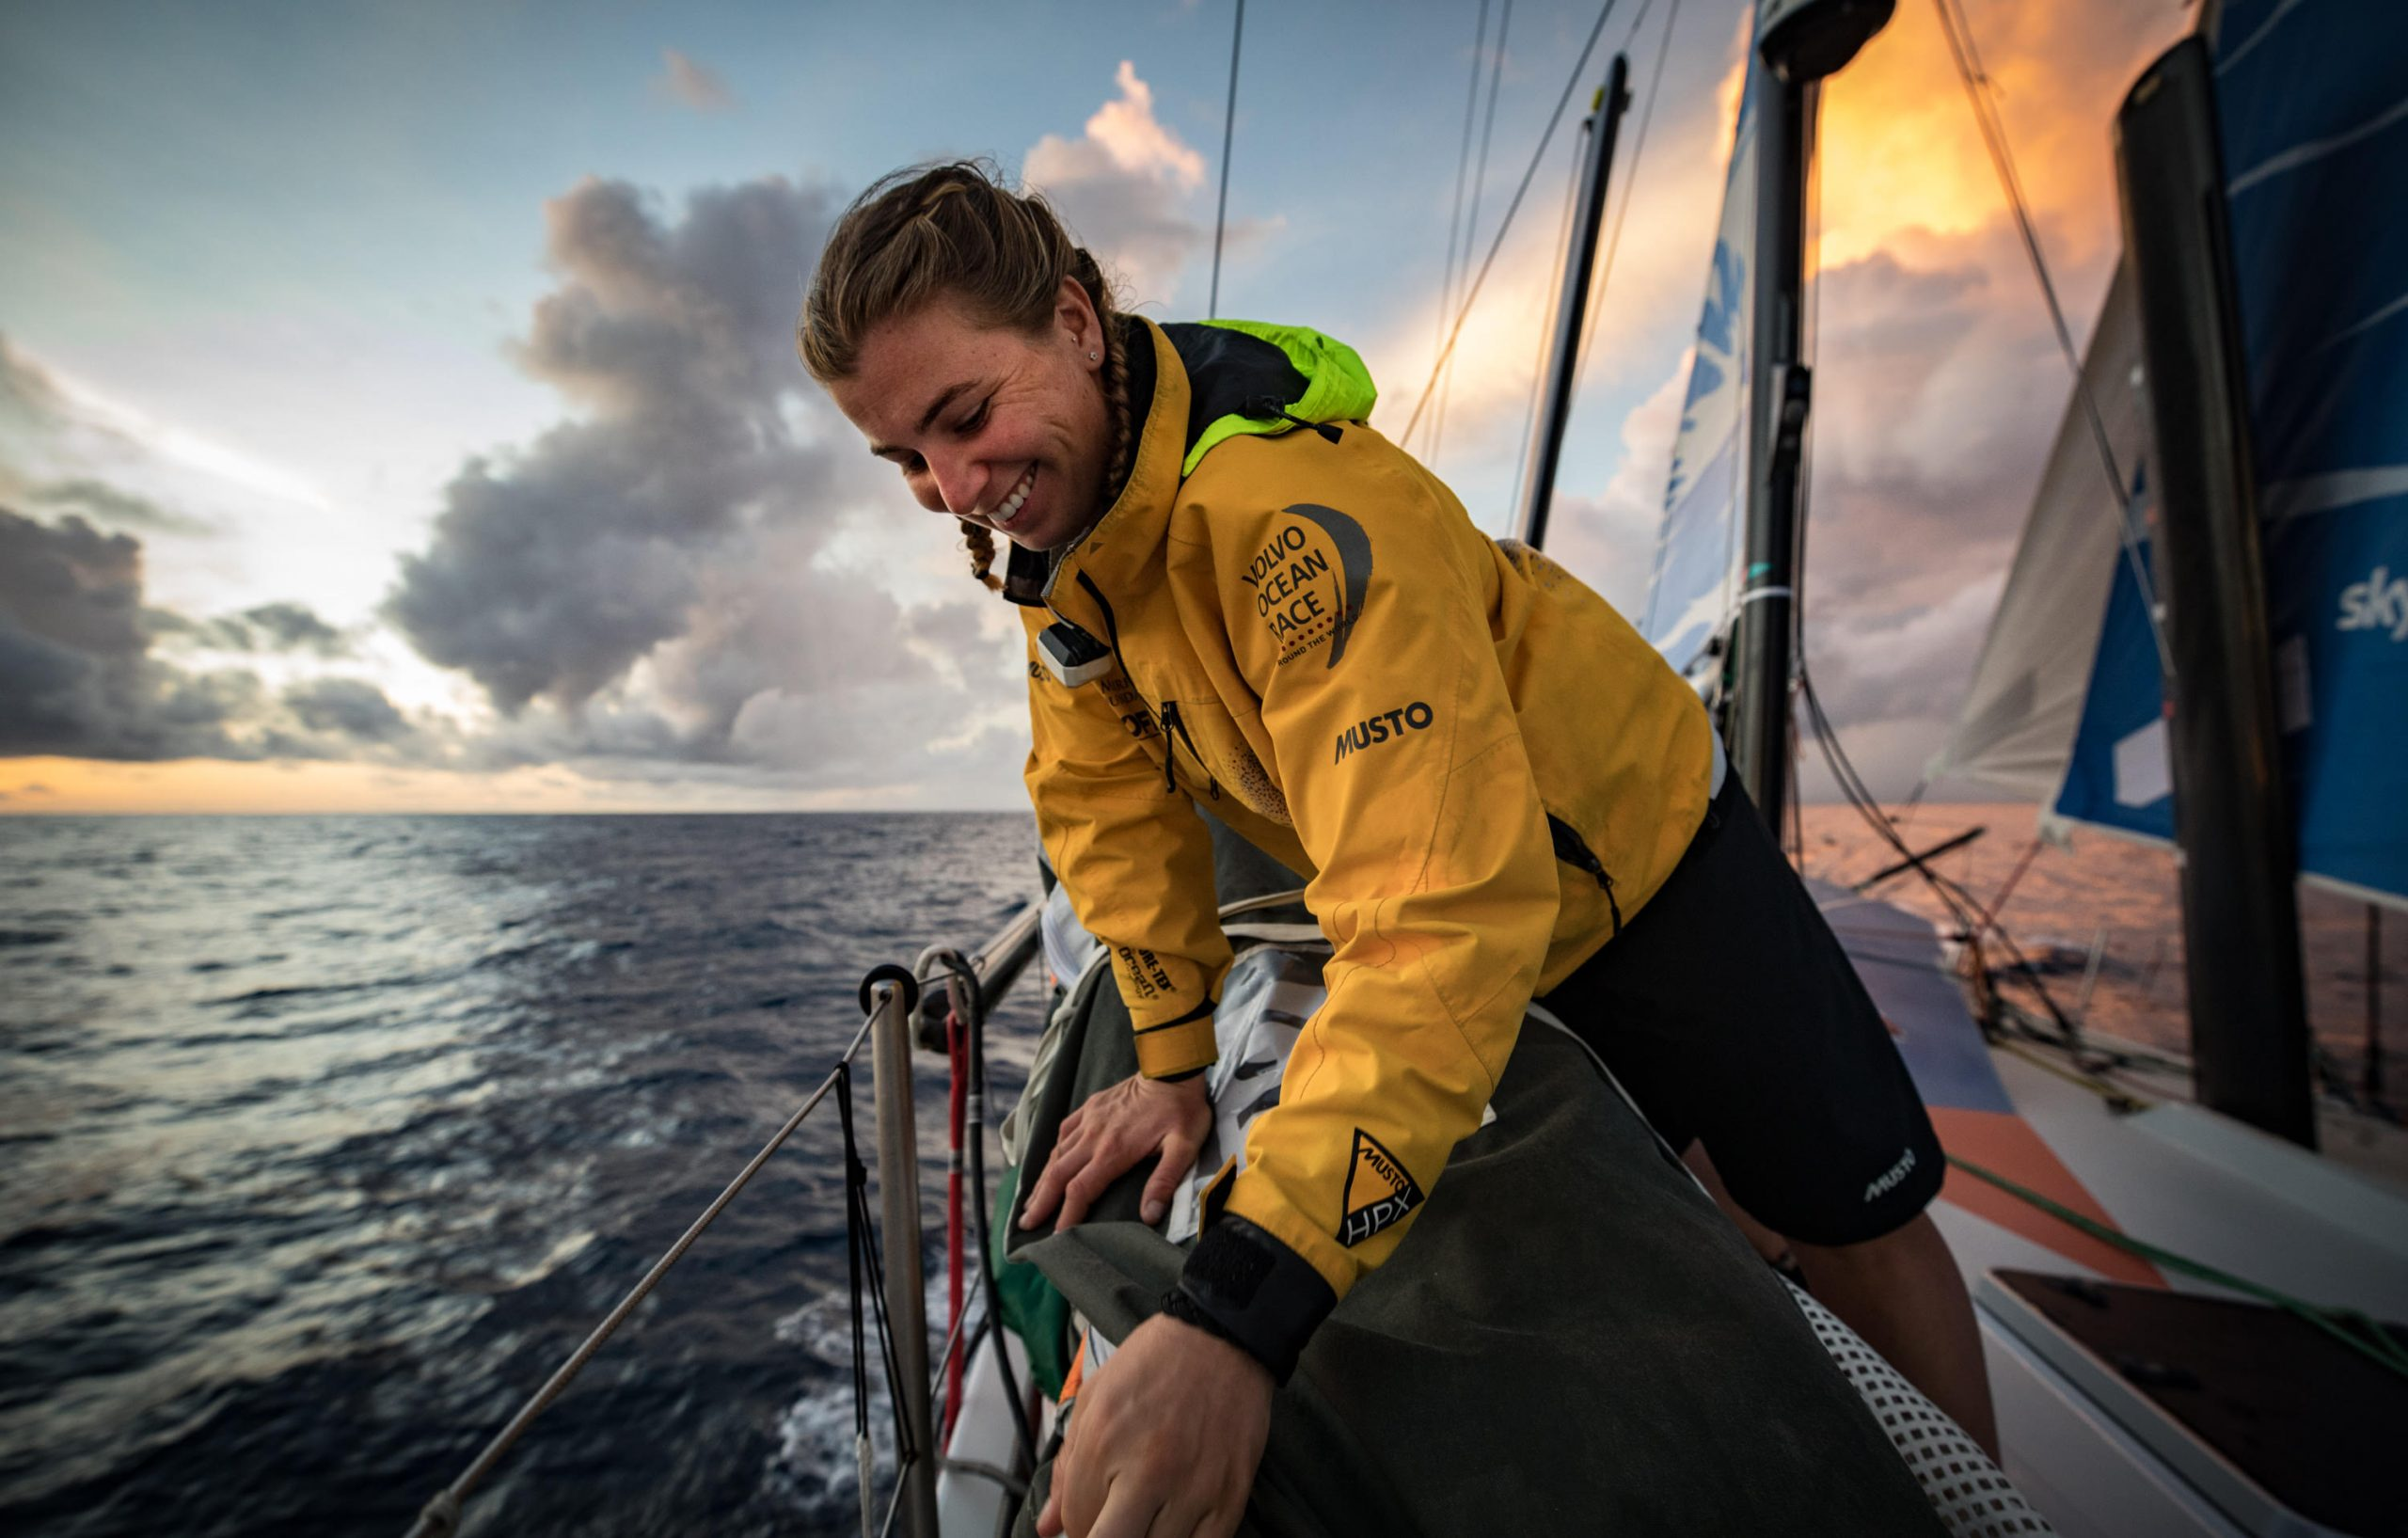 Volvo Ocean Race 2021 sailor Bianca Cook